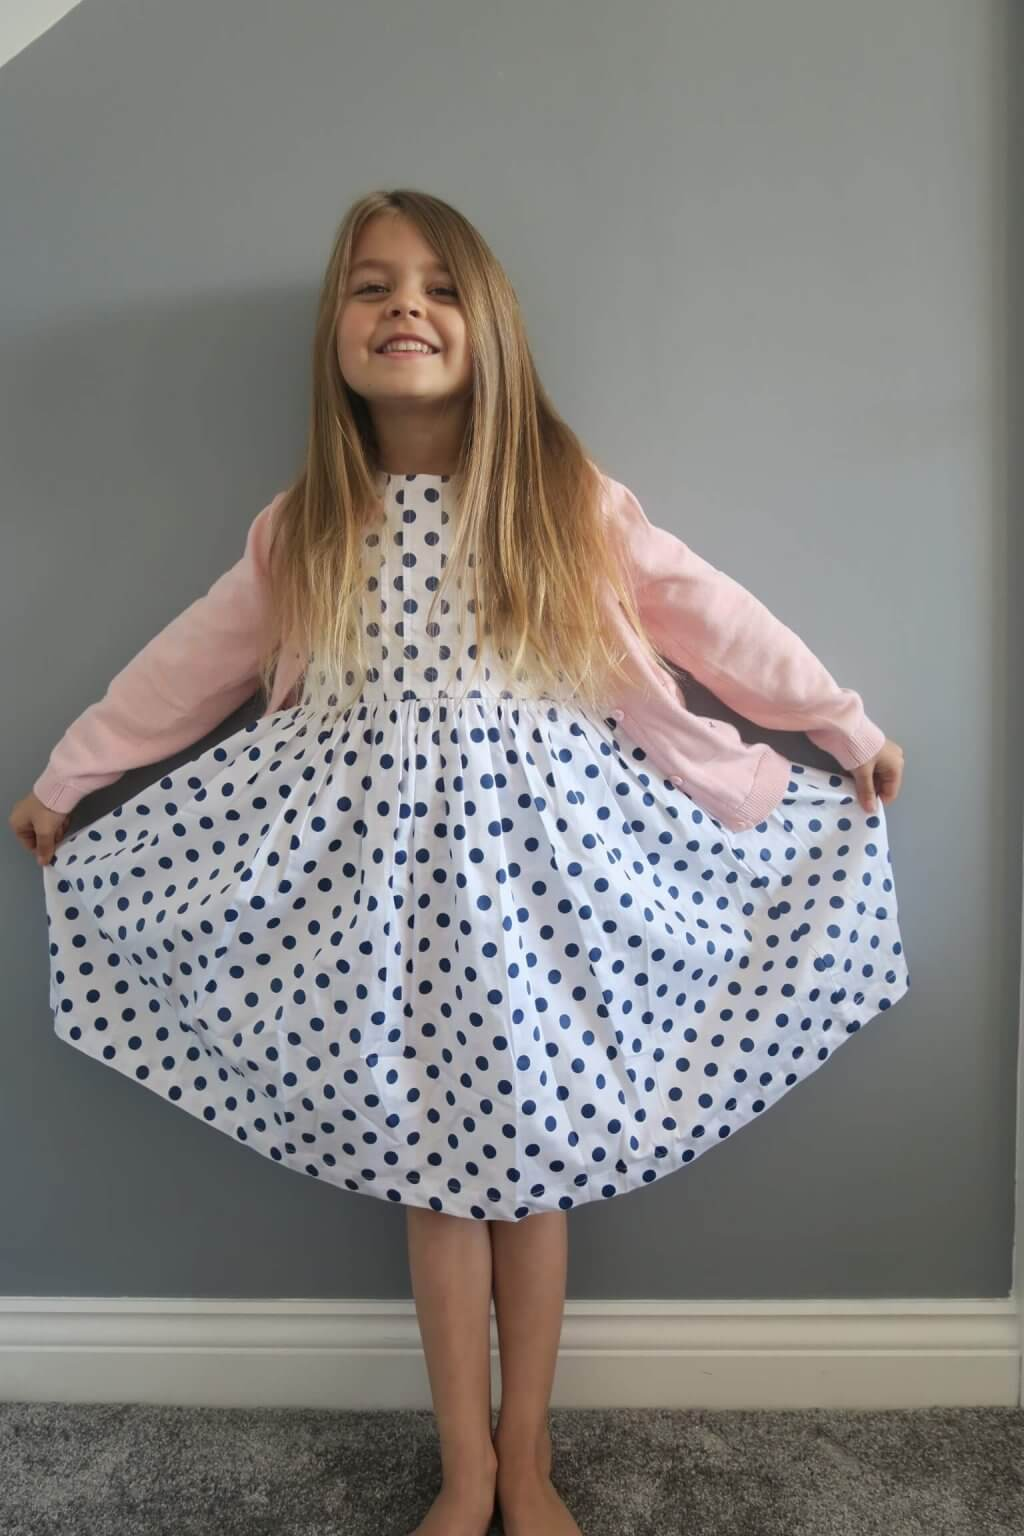 holly and jack's style girl wearing a spotty dress